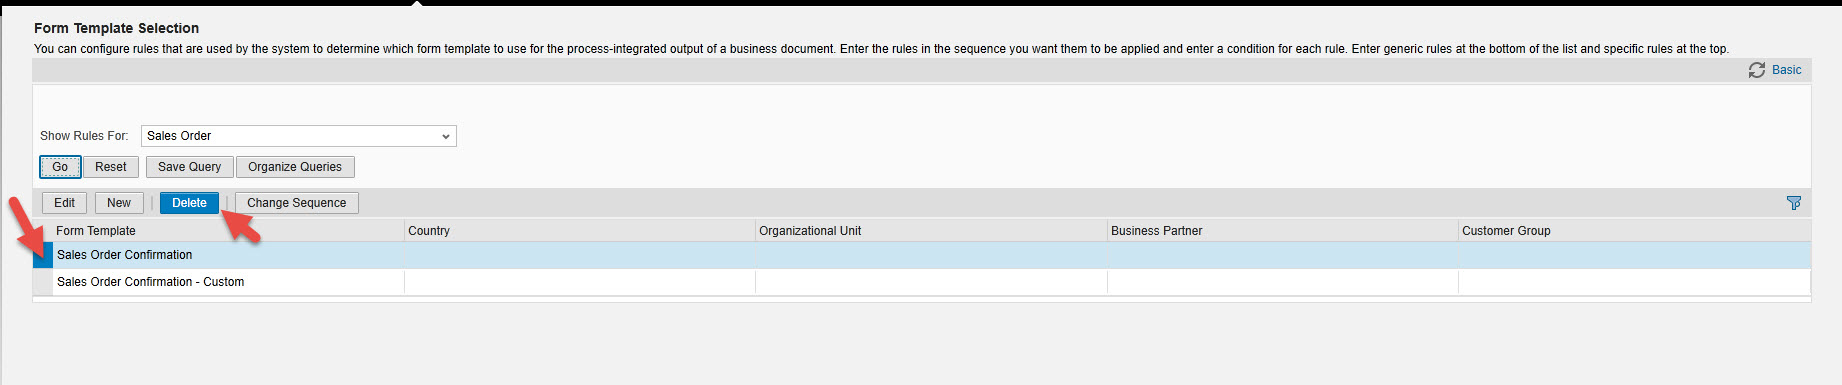 Custom Form Templates  Tips About How To Use  Form Template